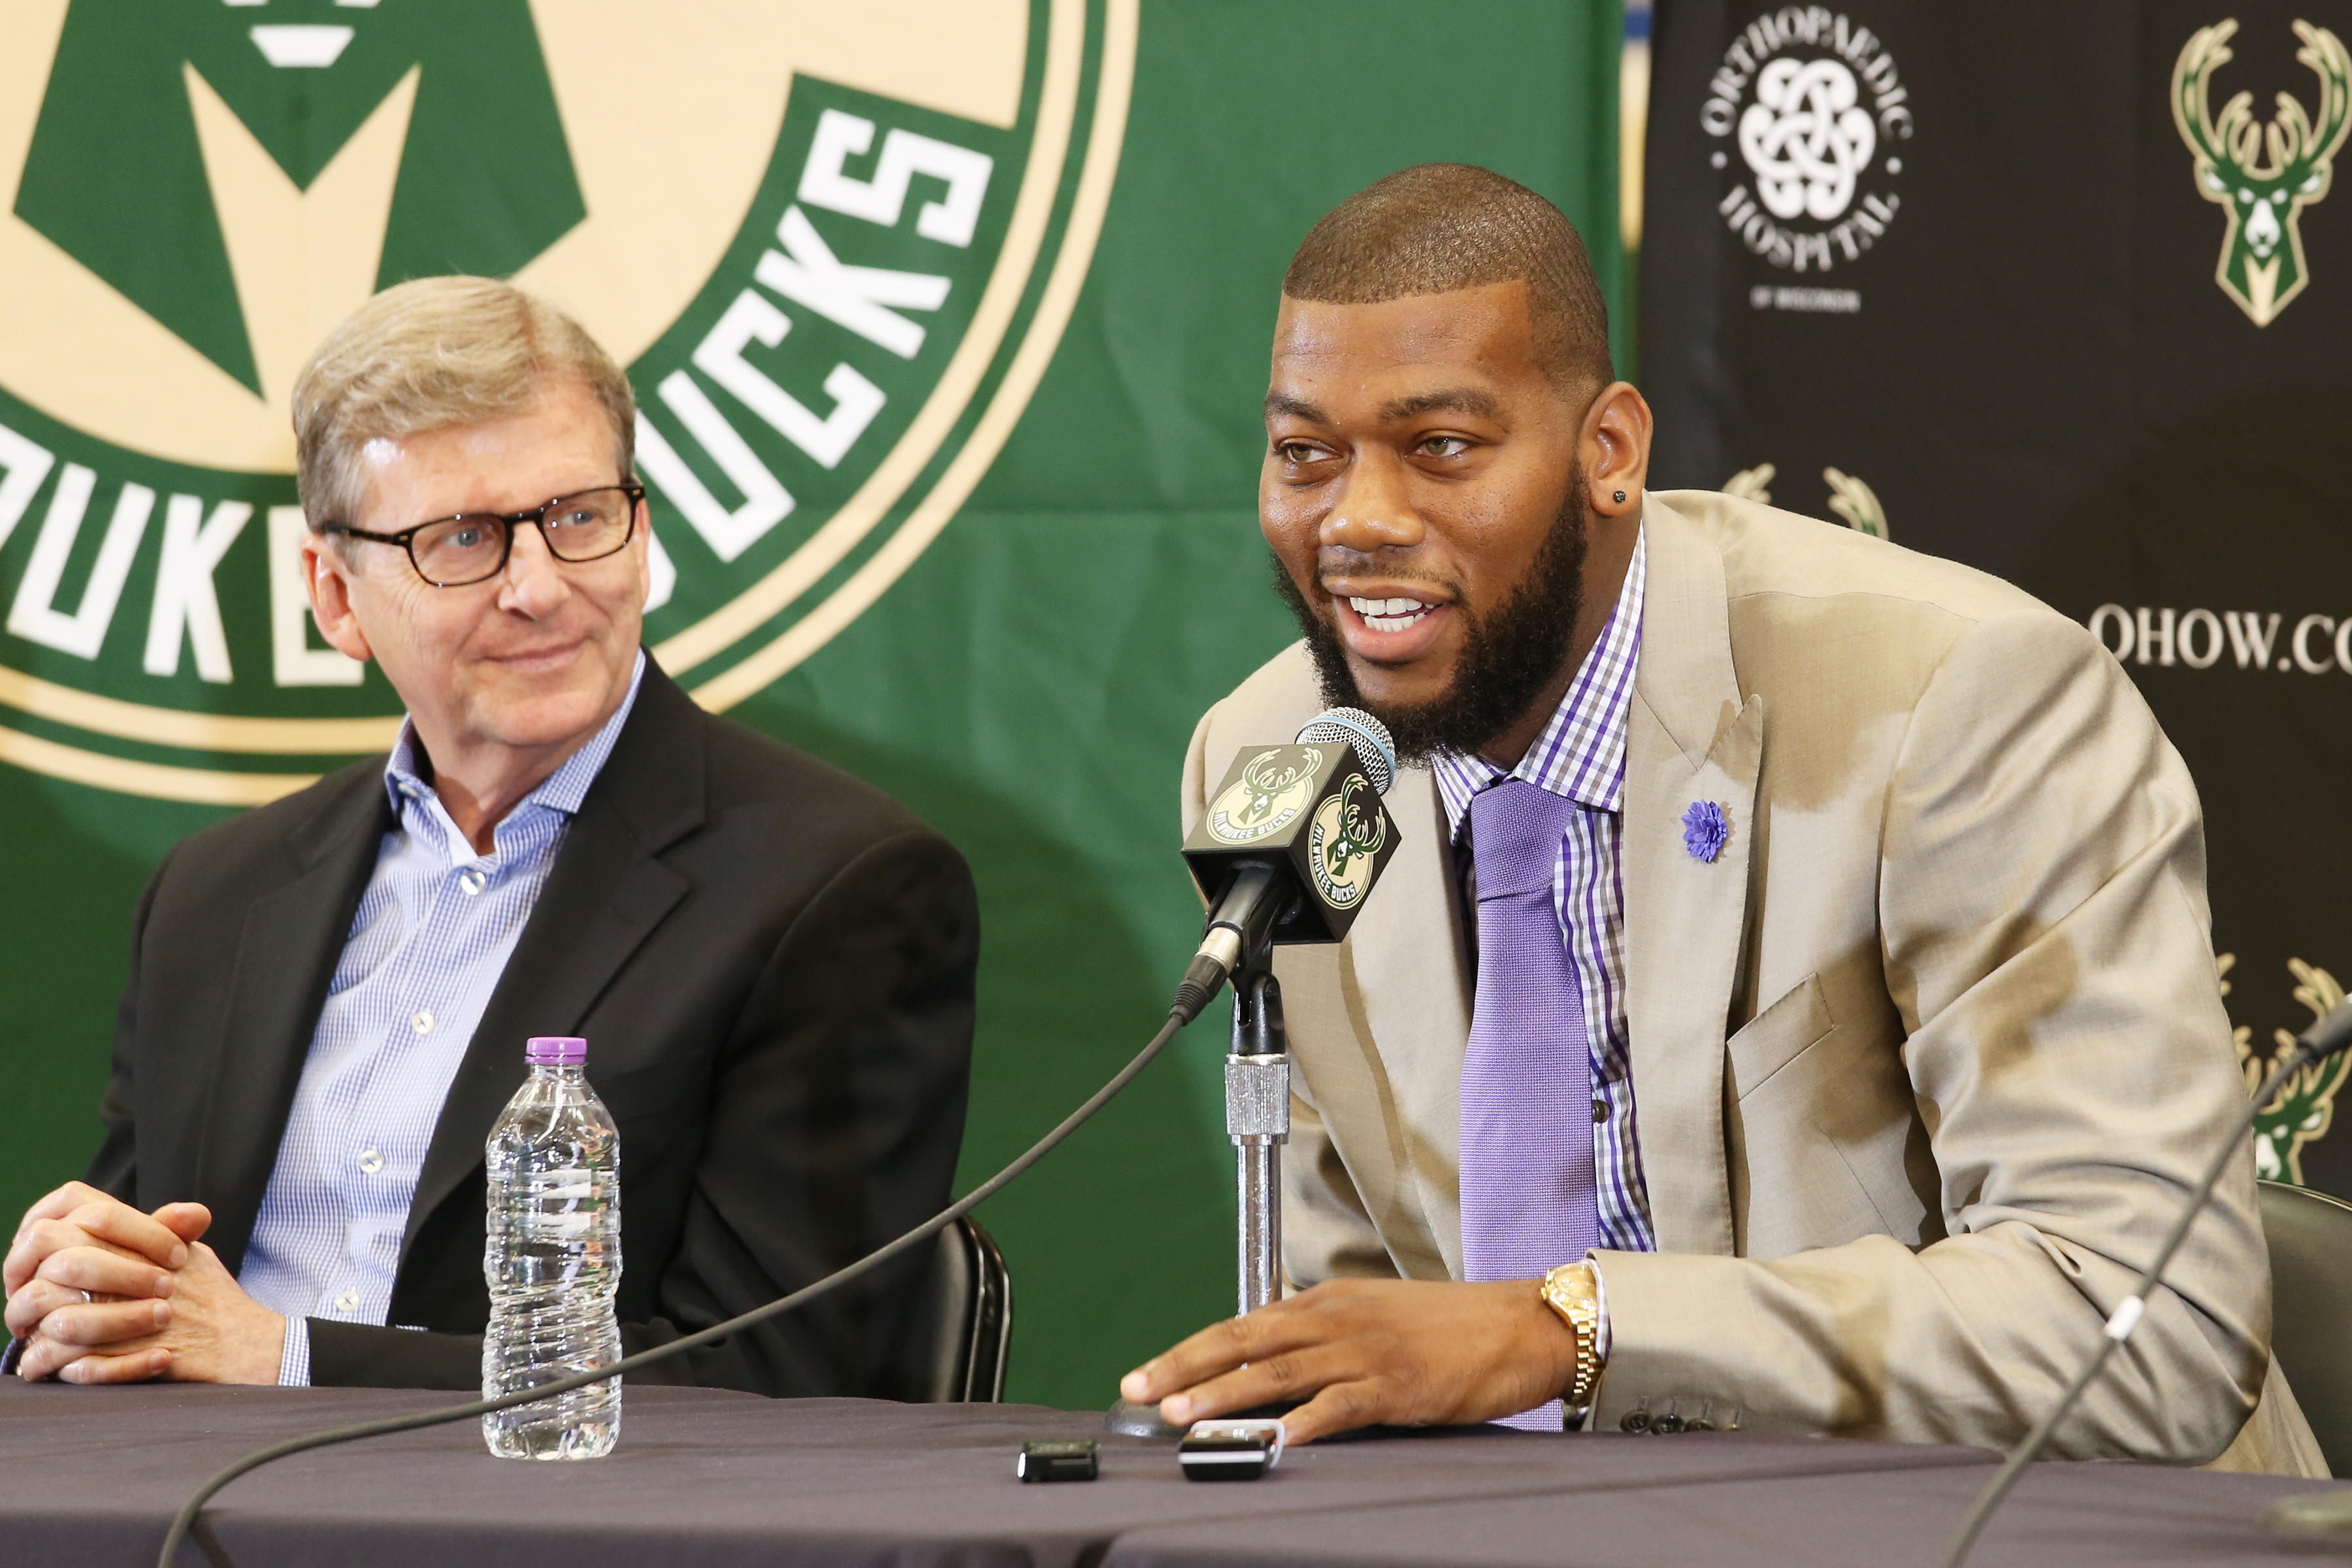 ST. FRANCIS, WI - JULY 9: Recently signed free agents Greg Monroe and Khris Middleton of the Milwaukee Bucks are joined by general manager John Hammond and head coach Jason Kidd during a press conference at the Orthopaedic Hospital of Wisconsin Training C